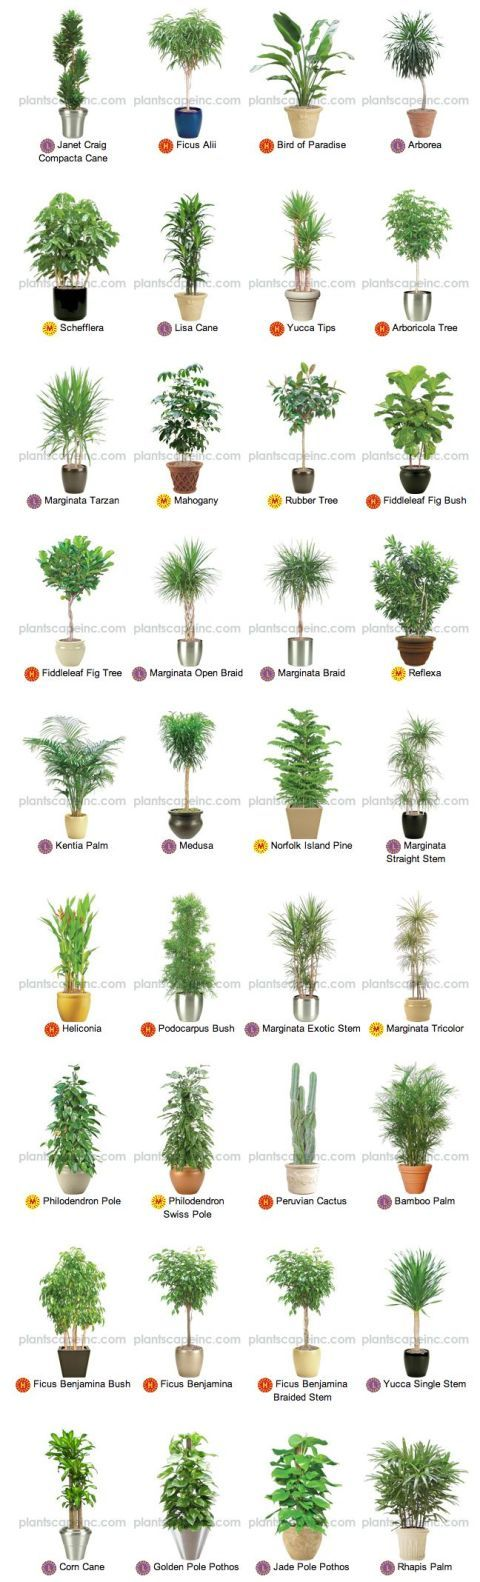 Best of Home and Garden: 18 ways to use plants to make your home look LOVEL...